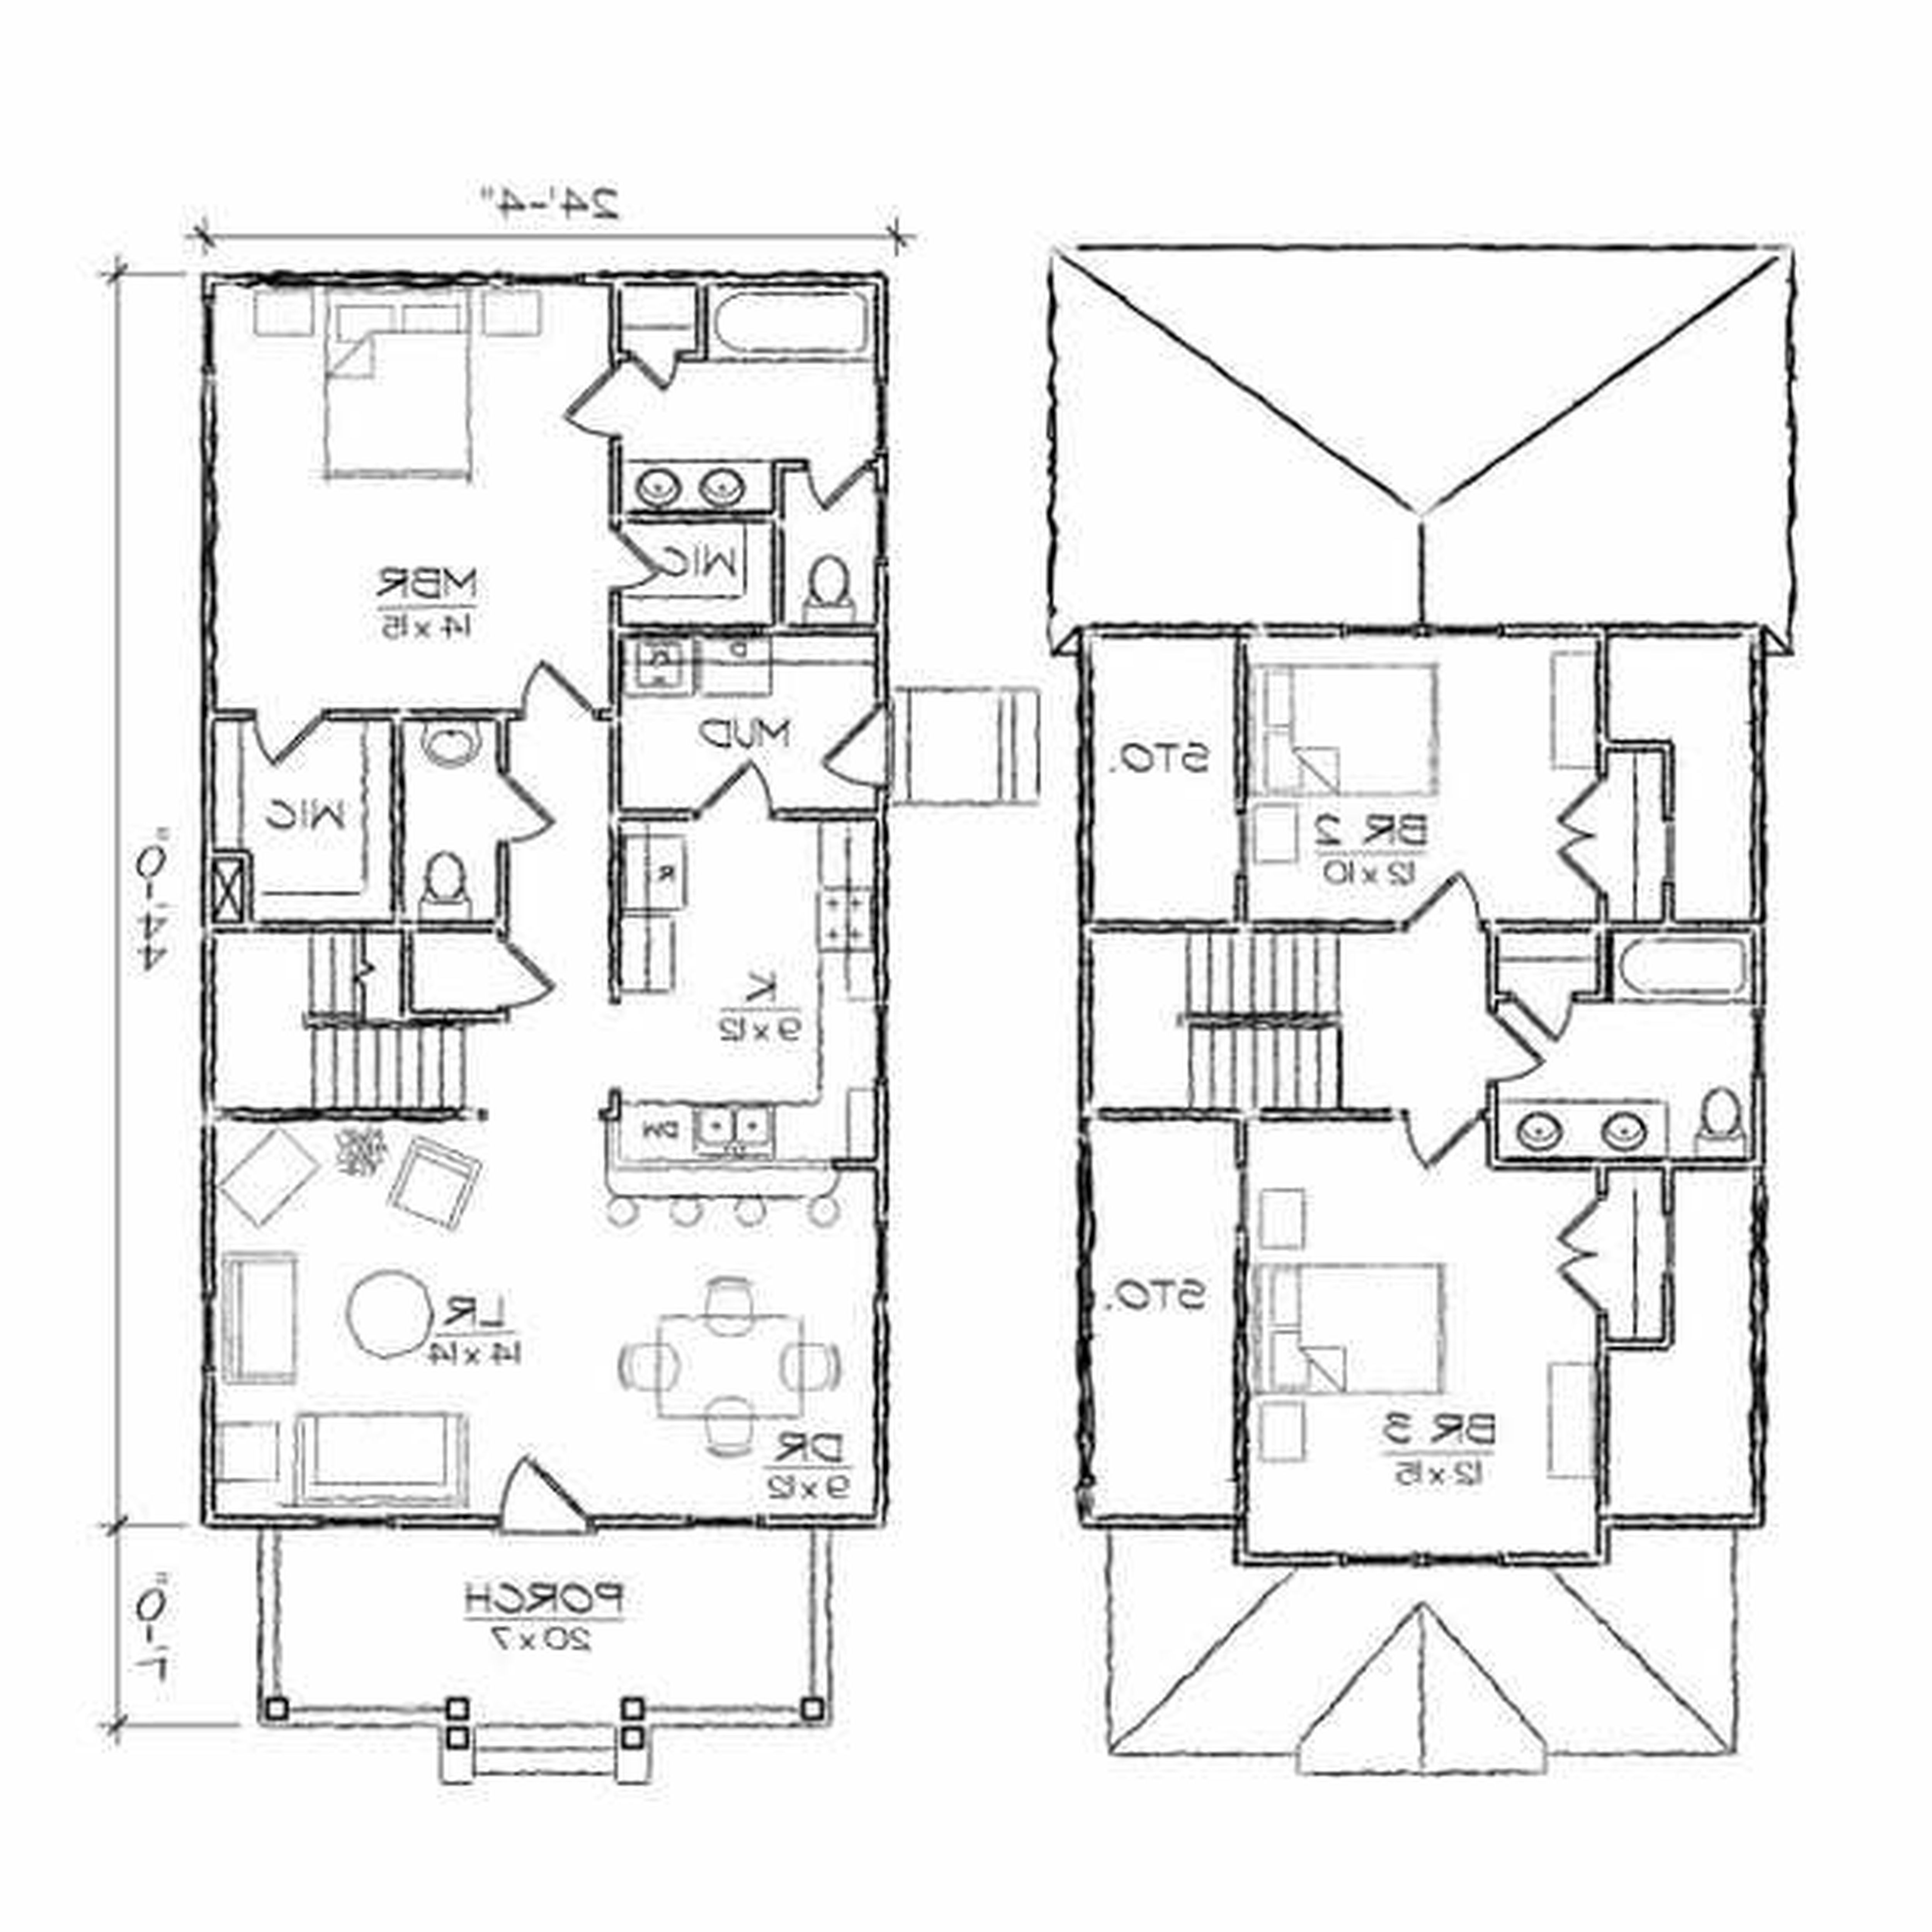 5000x5000 House Design Software Online Architecture Plan Free Floor Drawing